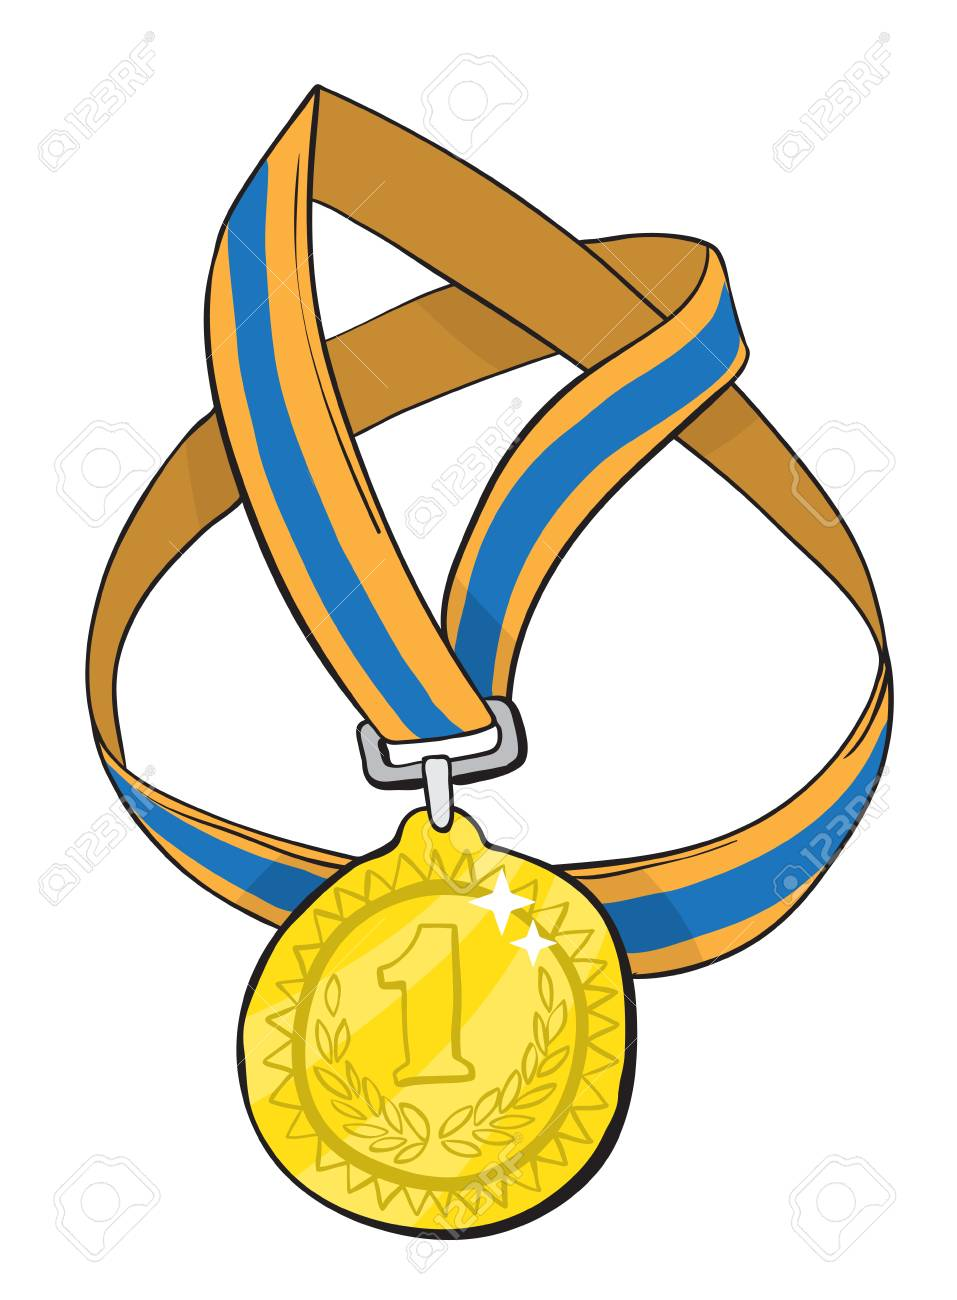 Cartoon image of first place medal.